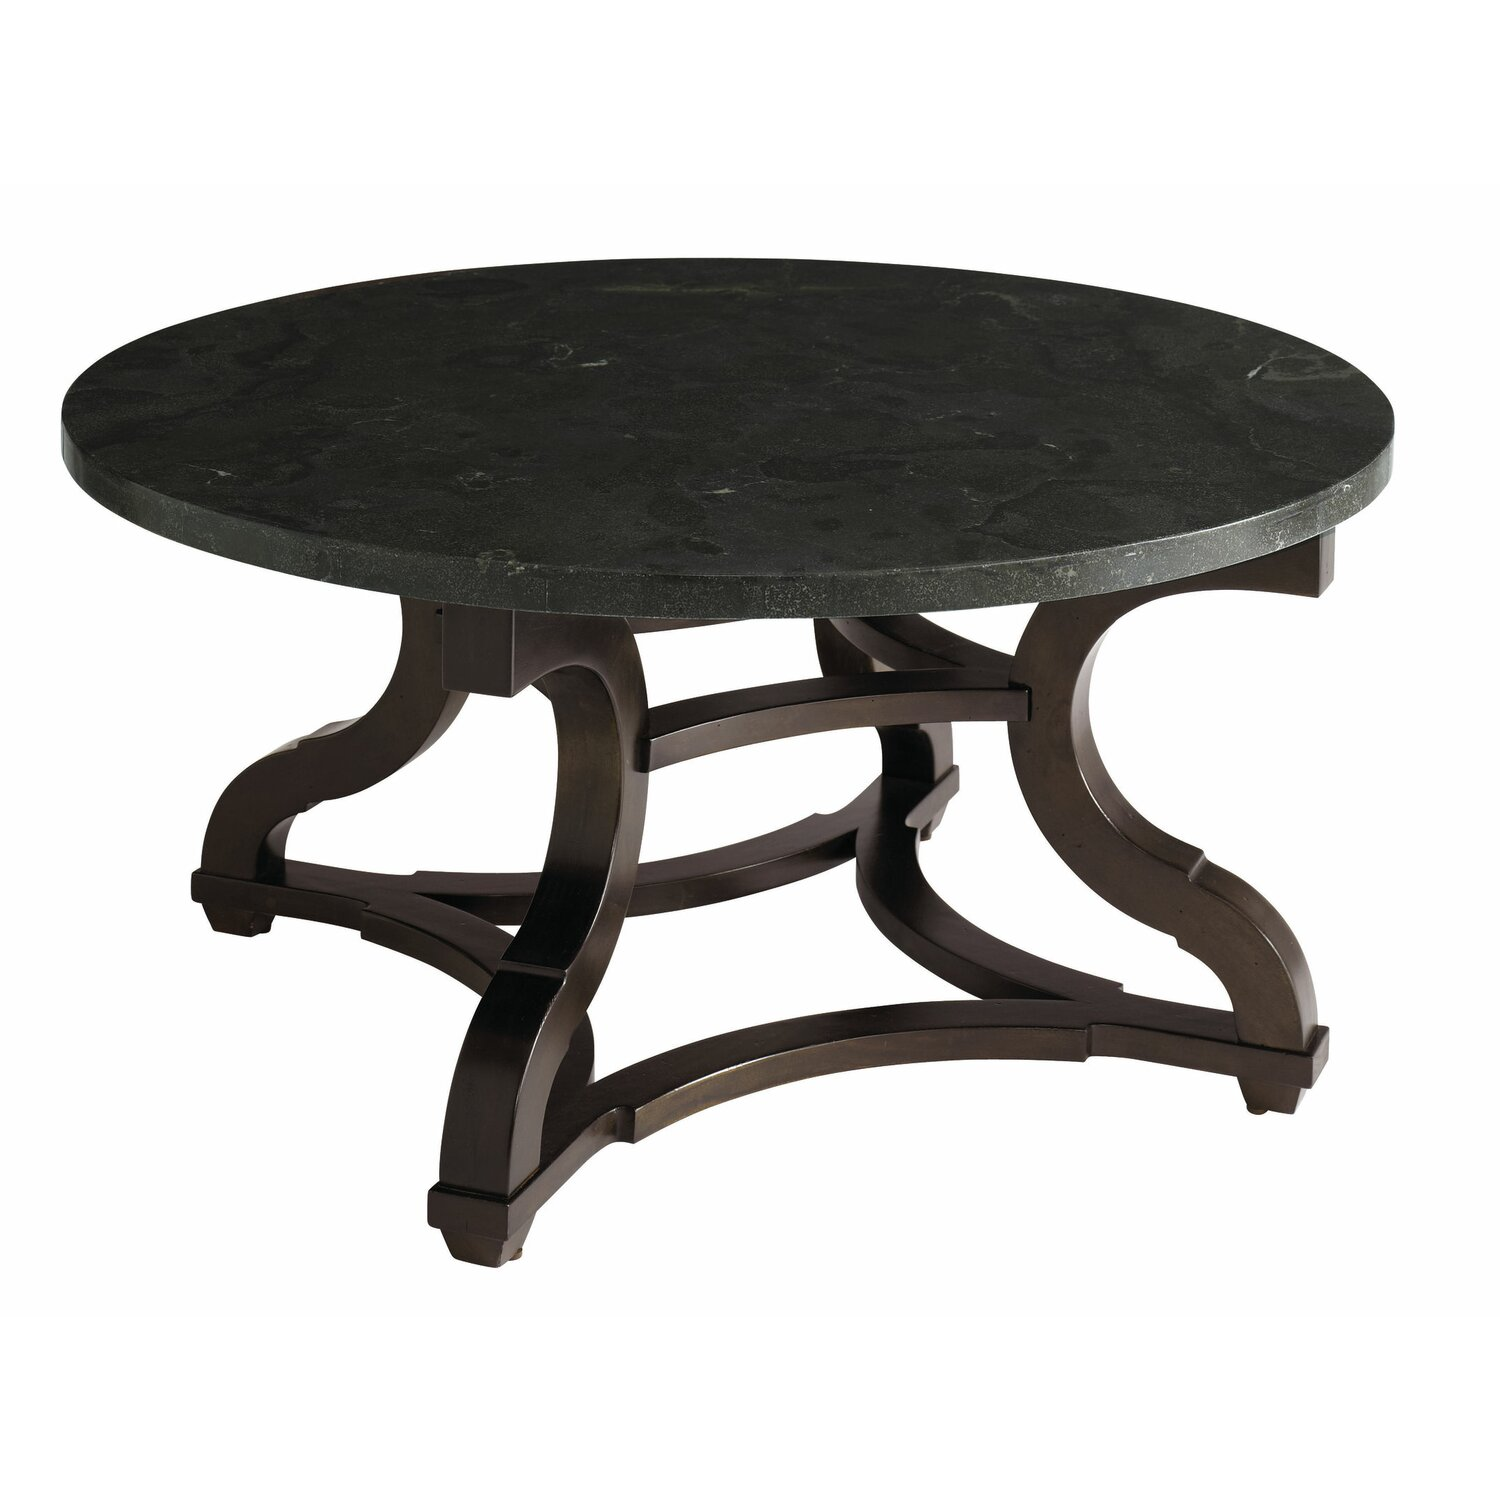 Blue Stone Coffee Table images